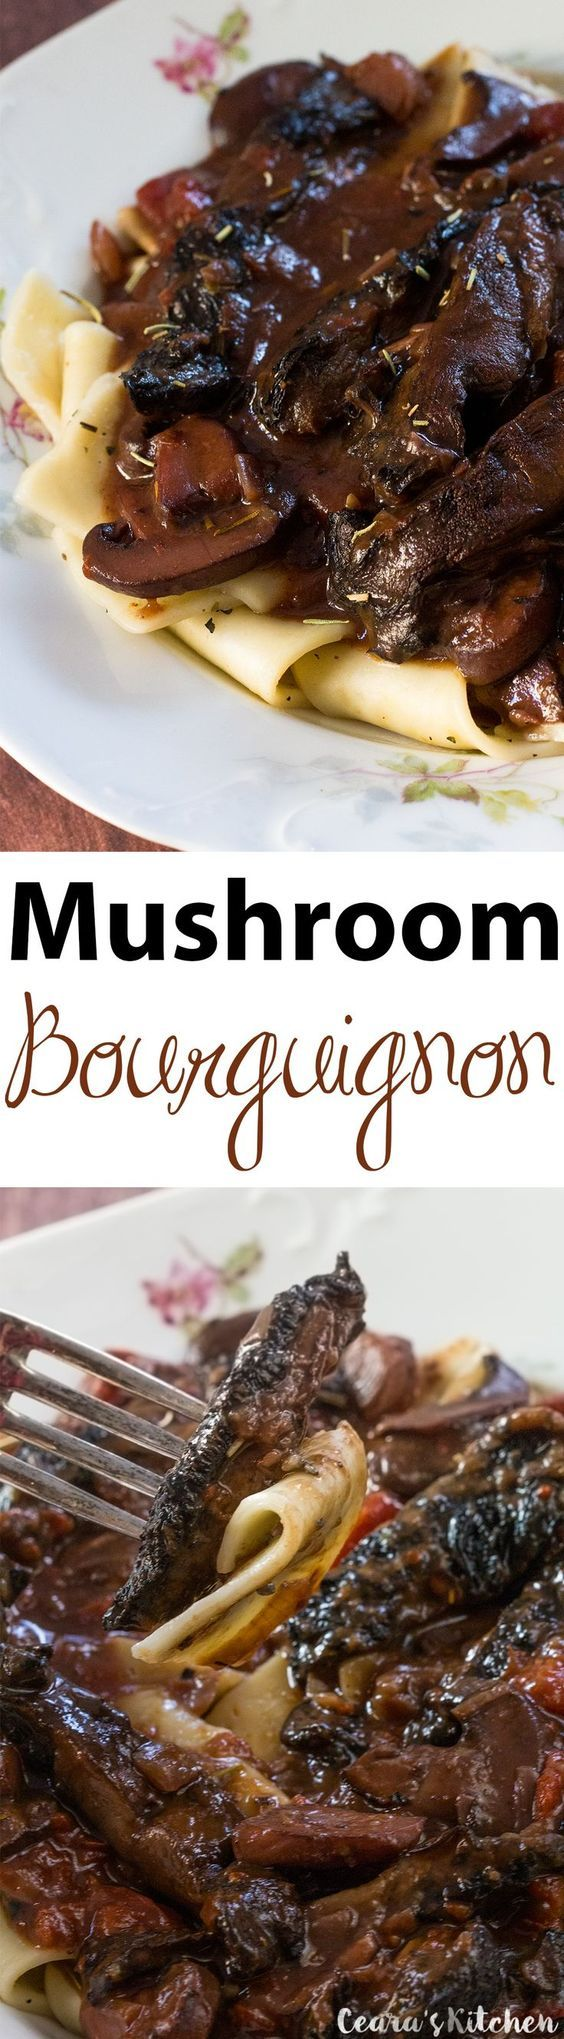 Vegan Beef Bourguignon made with a hearty, meaty & incredibly flavorful mushroom and and red wine sauce. This one's a classic that vegetarians no longer need to miss out on! Serve over pasta or potatoes with fresh bread for the perfect rustic meal!   Ceara's Kitchen